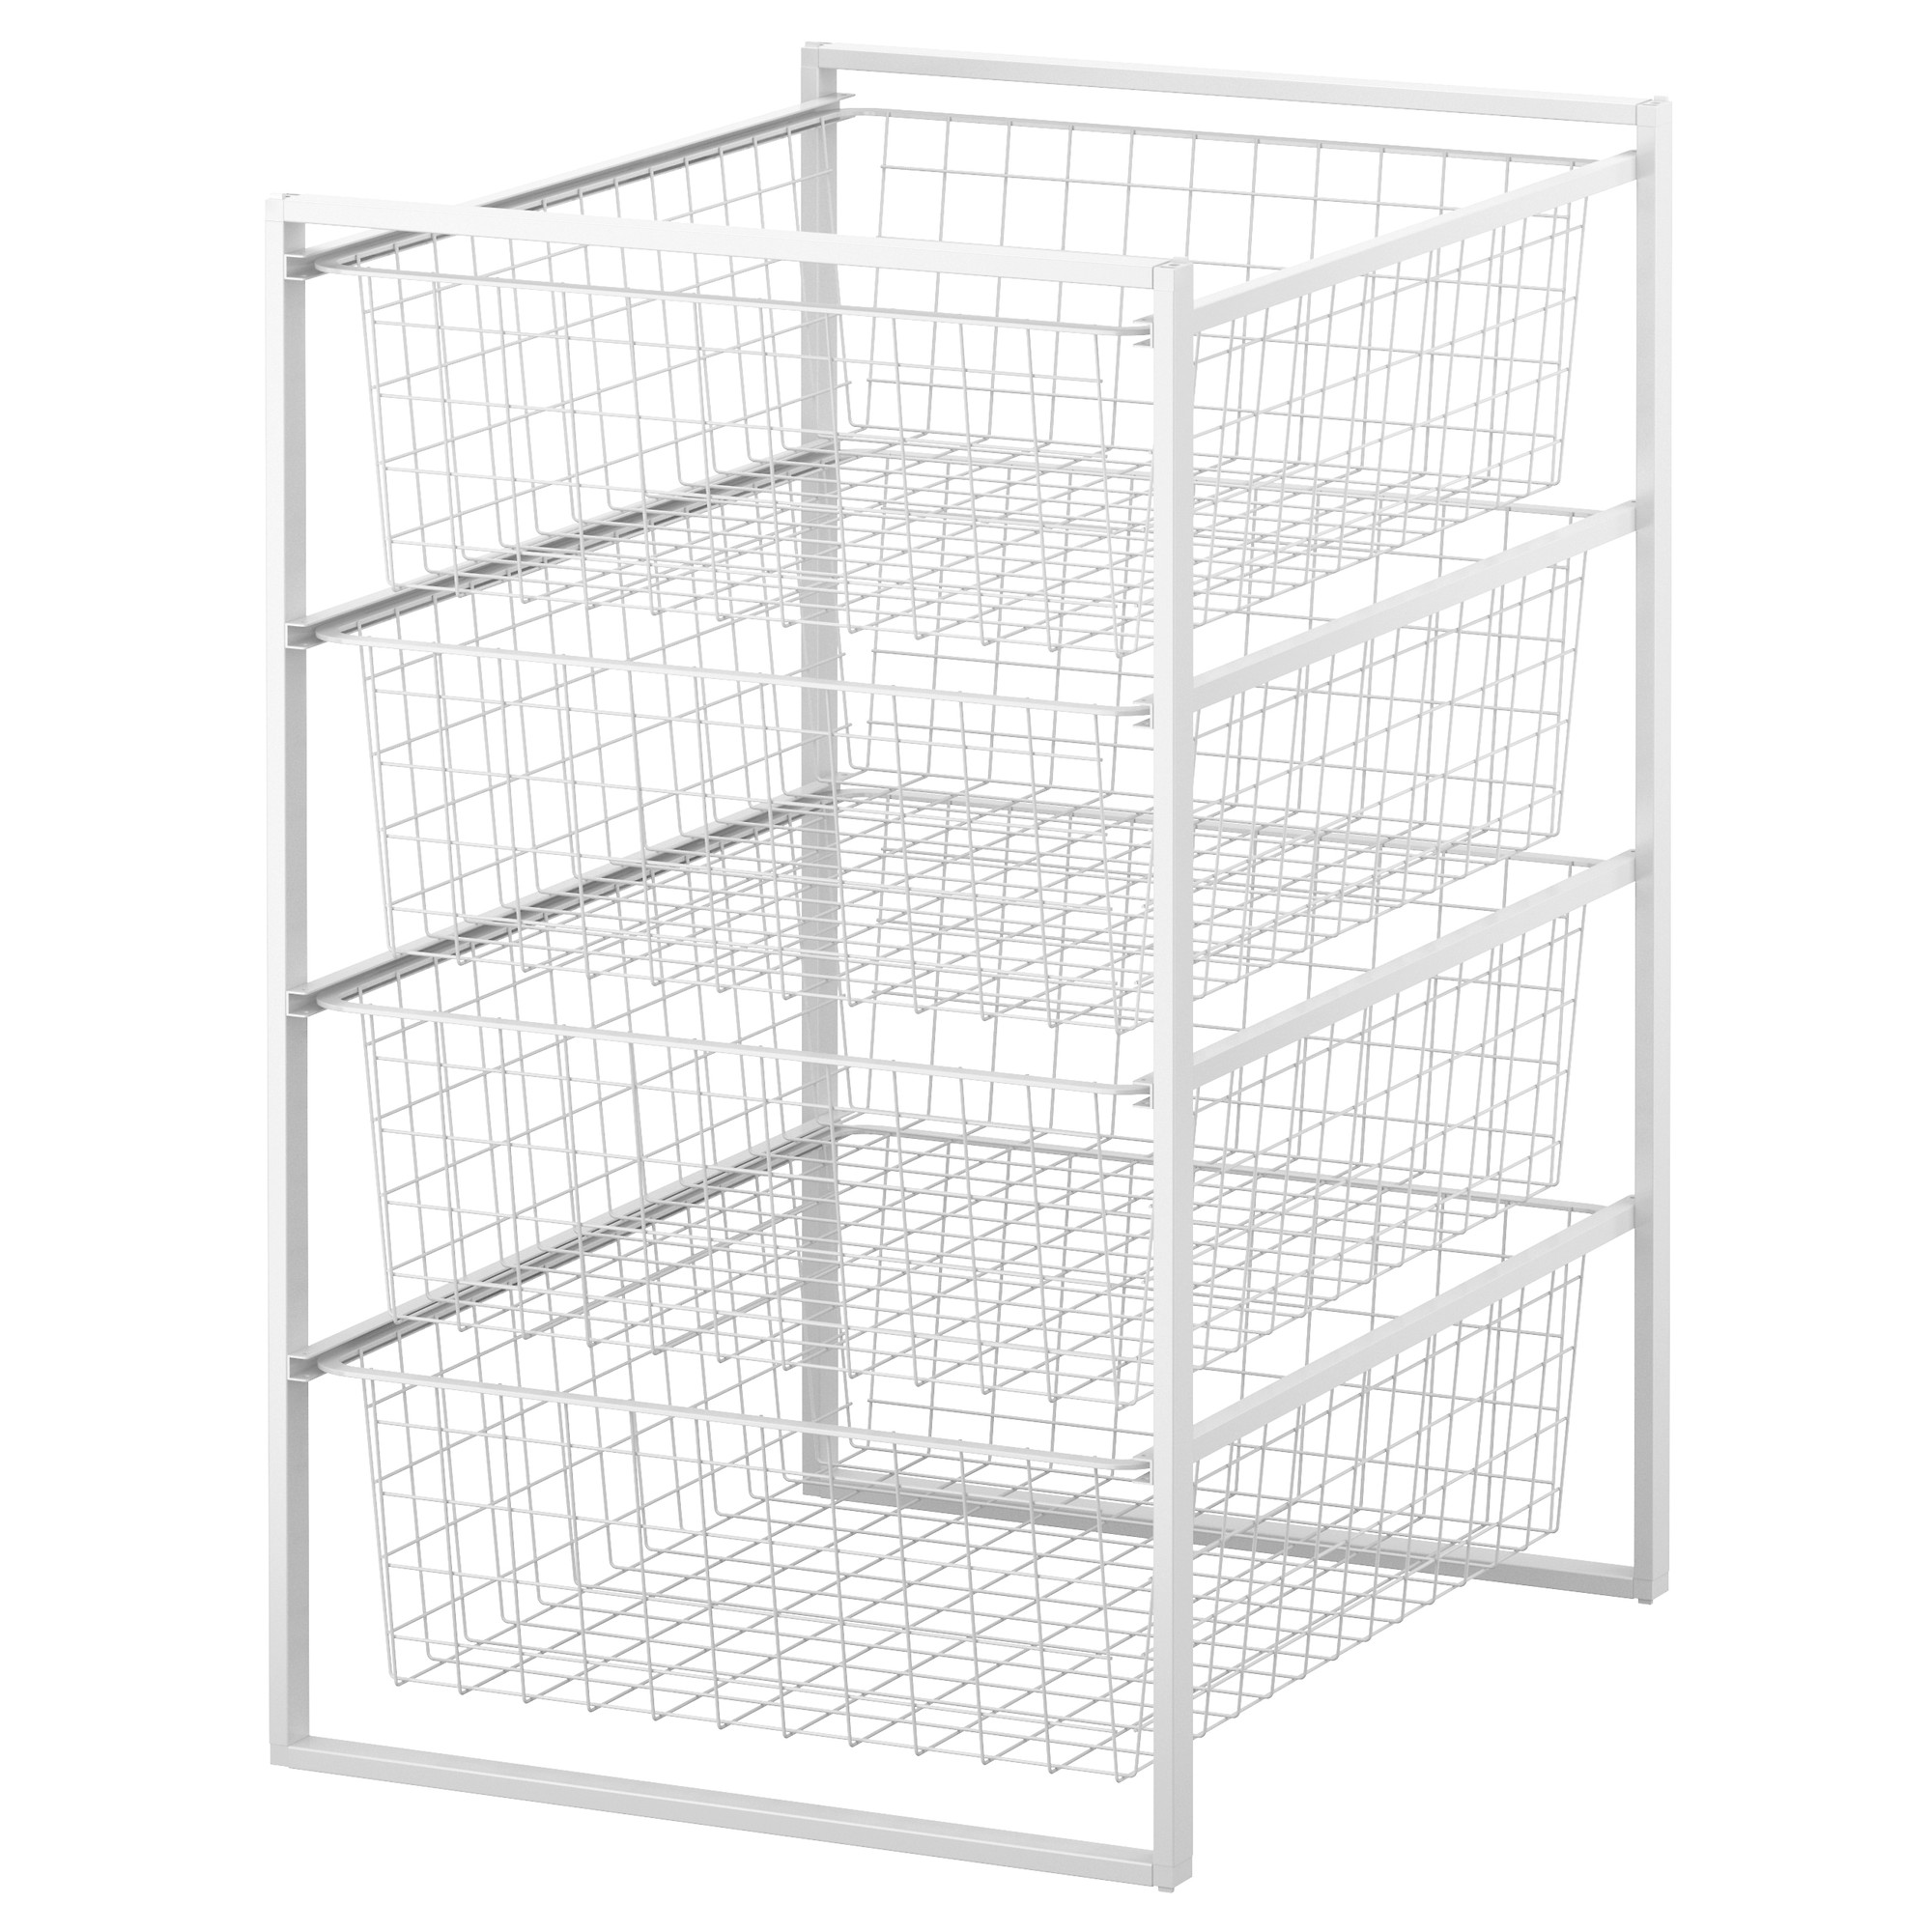 Ikea Sofa Wilj Ikea Antonius Frame And Wire Baskets White